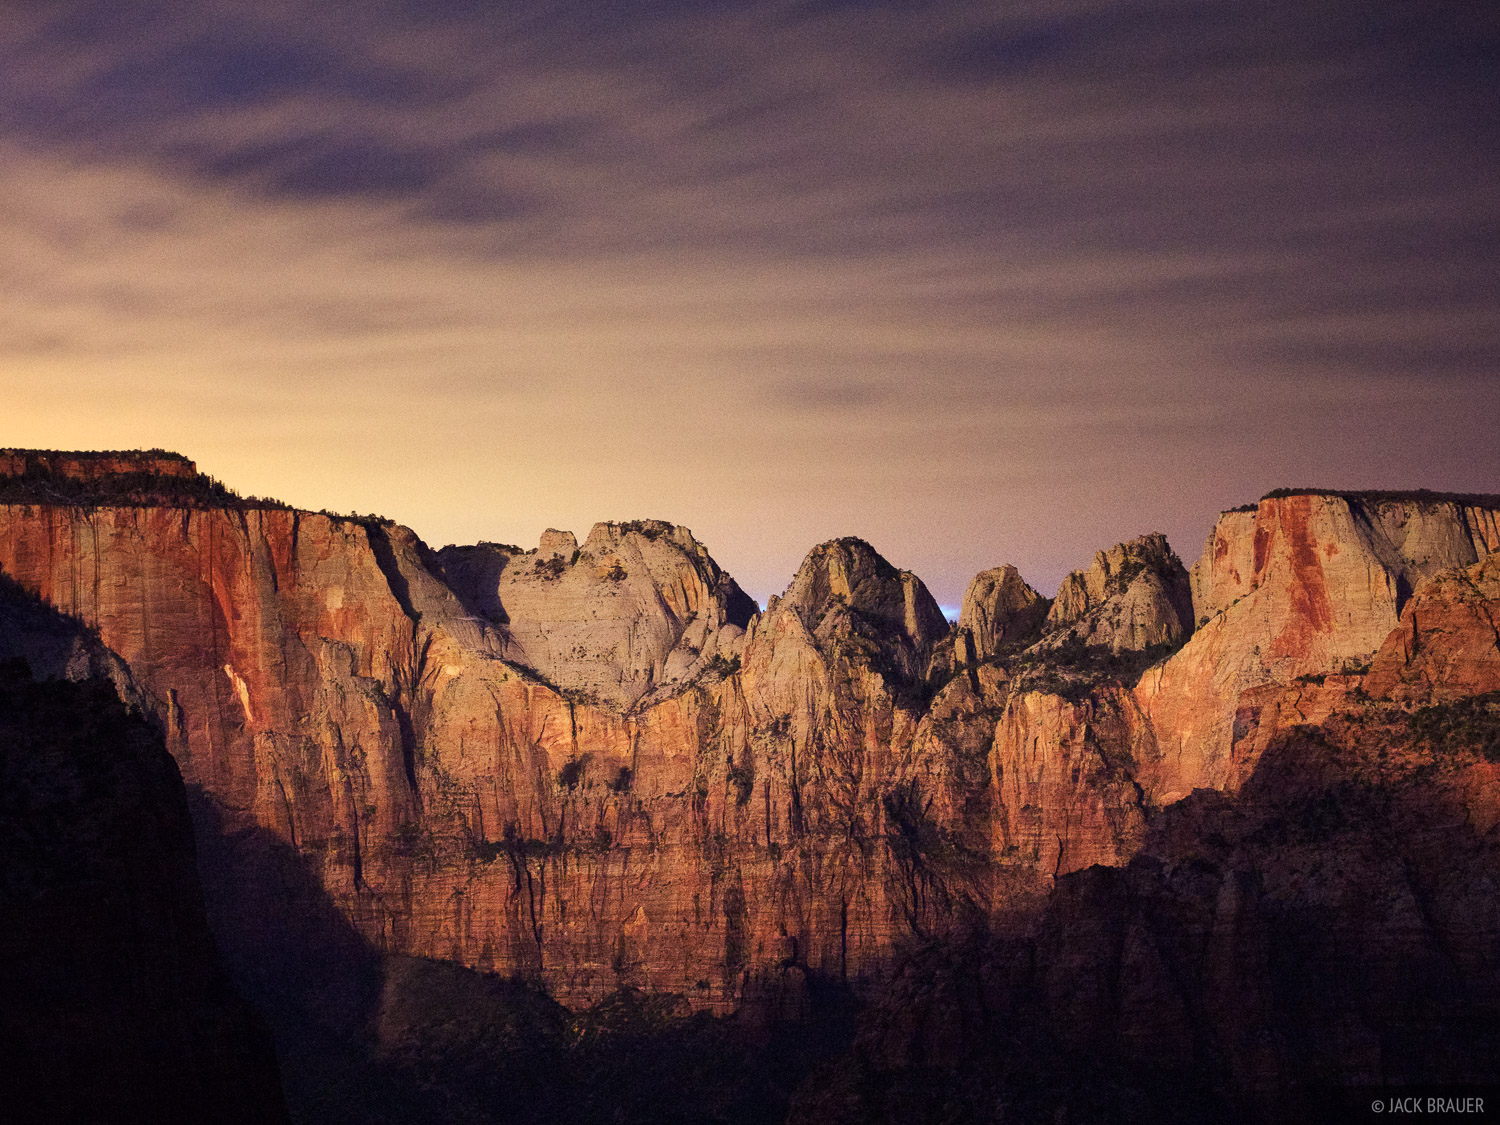 moonrise, Three Virgins, Zion National Park, Utah, Canyon Overlook, photo